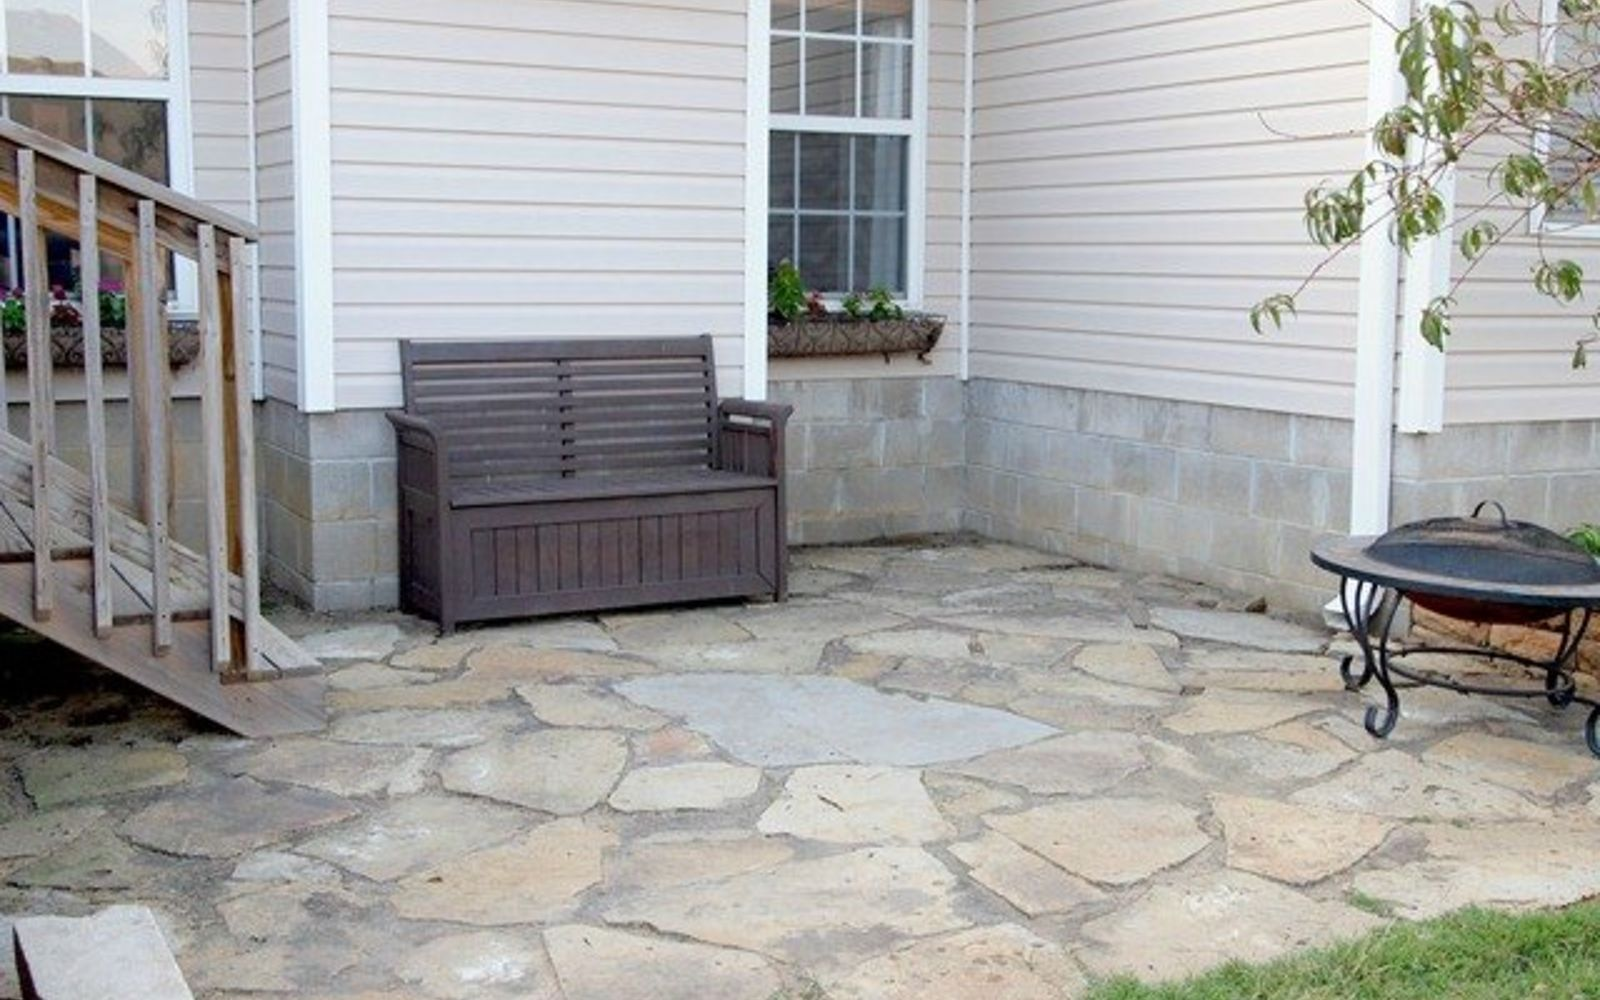 s 15 decorative ways your family can pretty up your patio, Coordinate Rocks Onto Your Patio